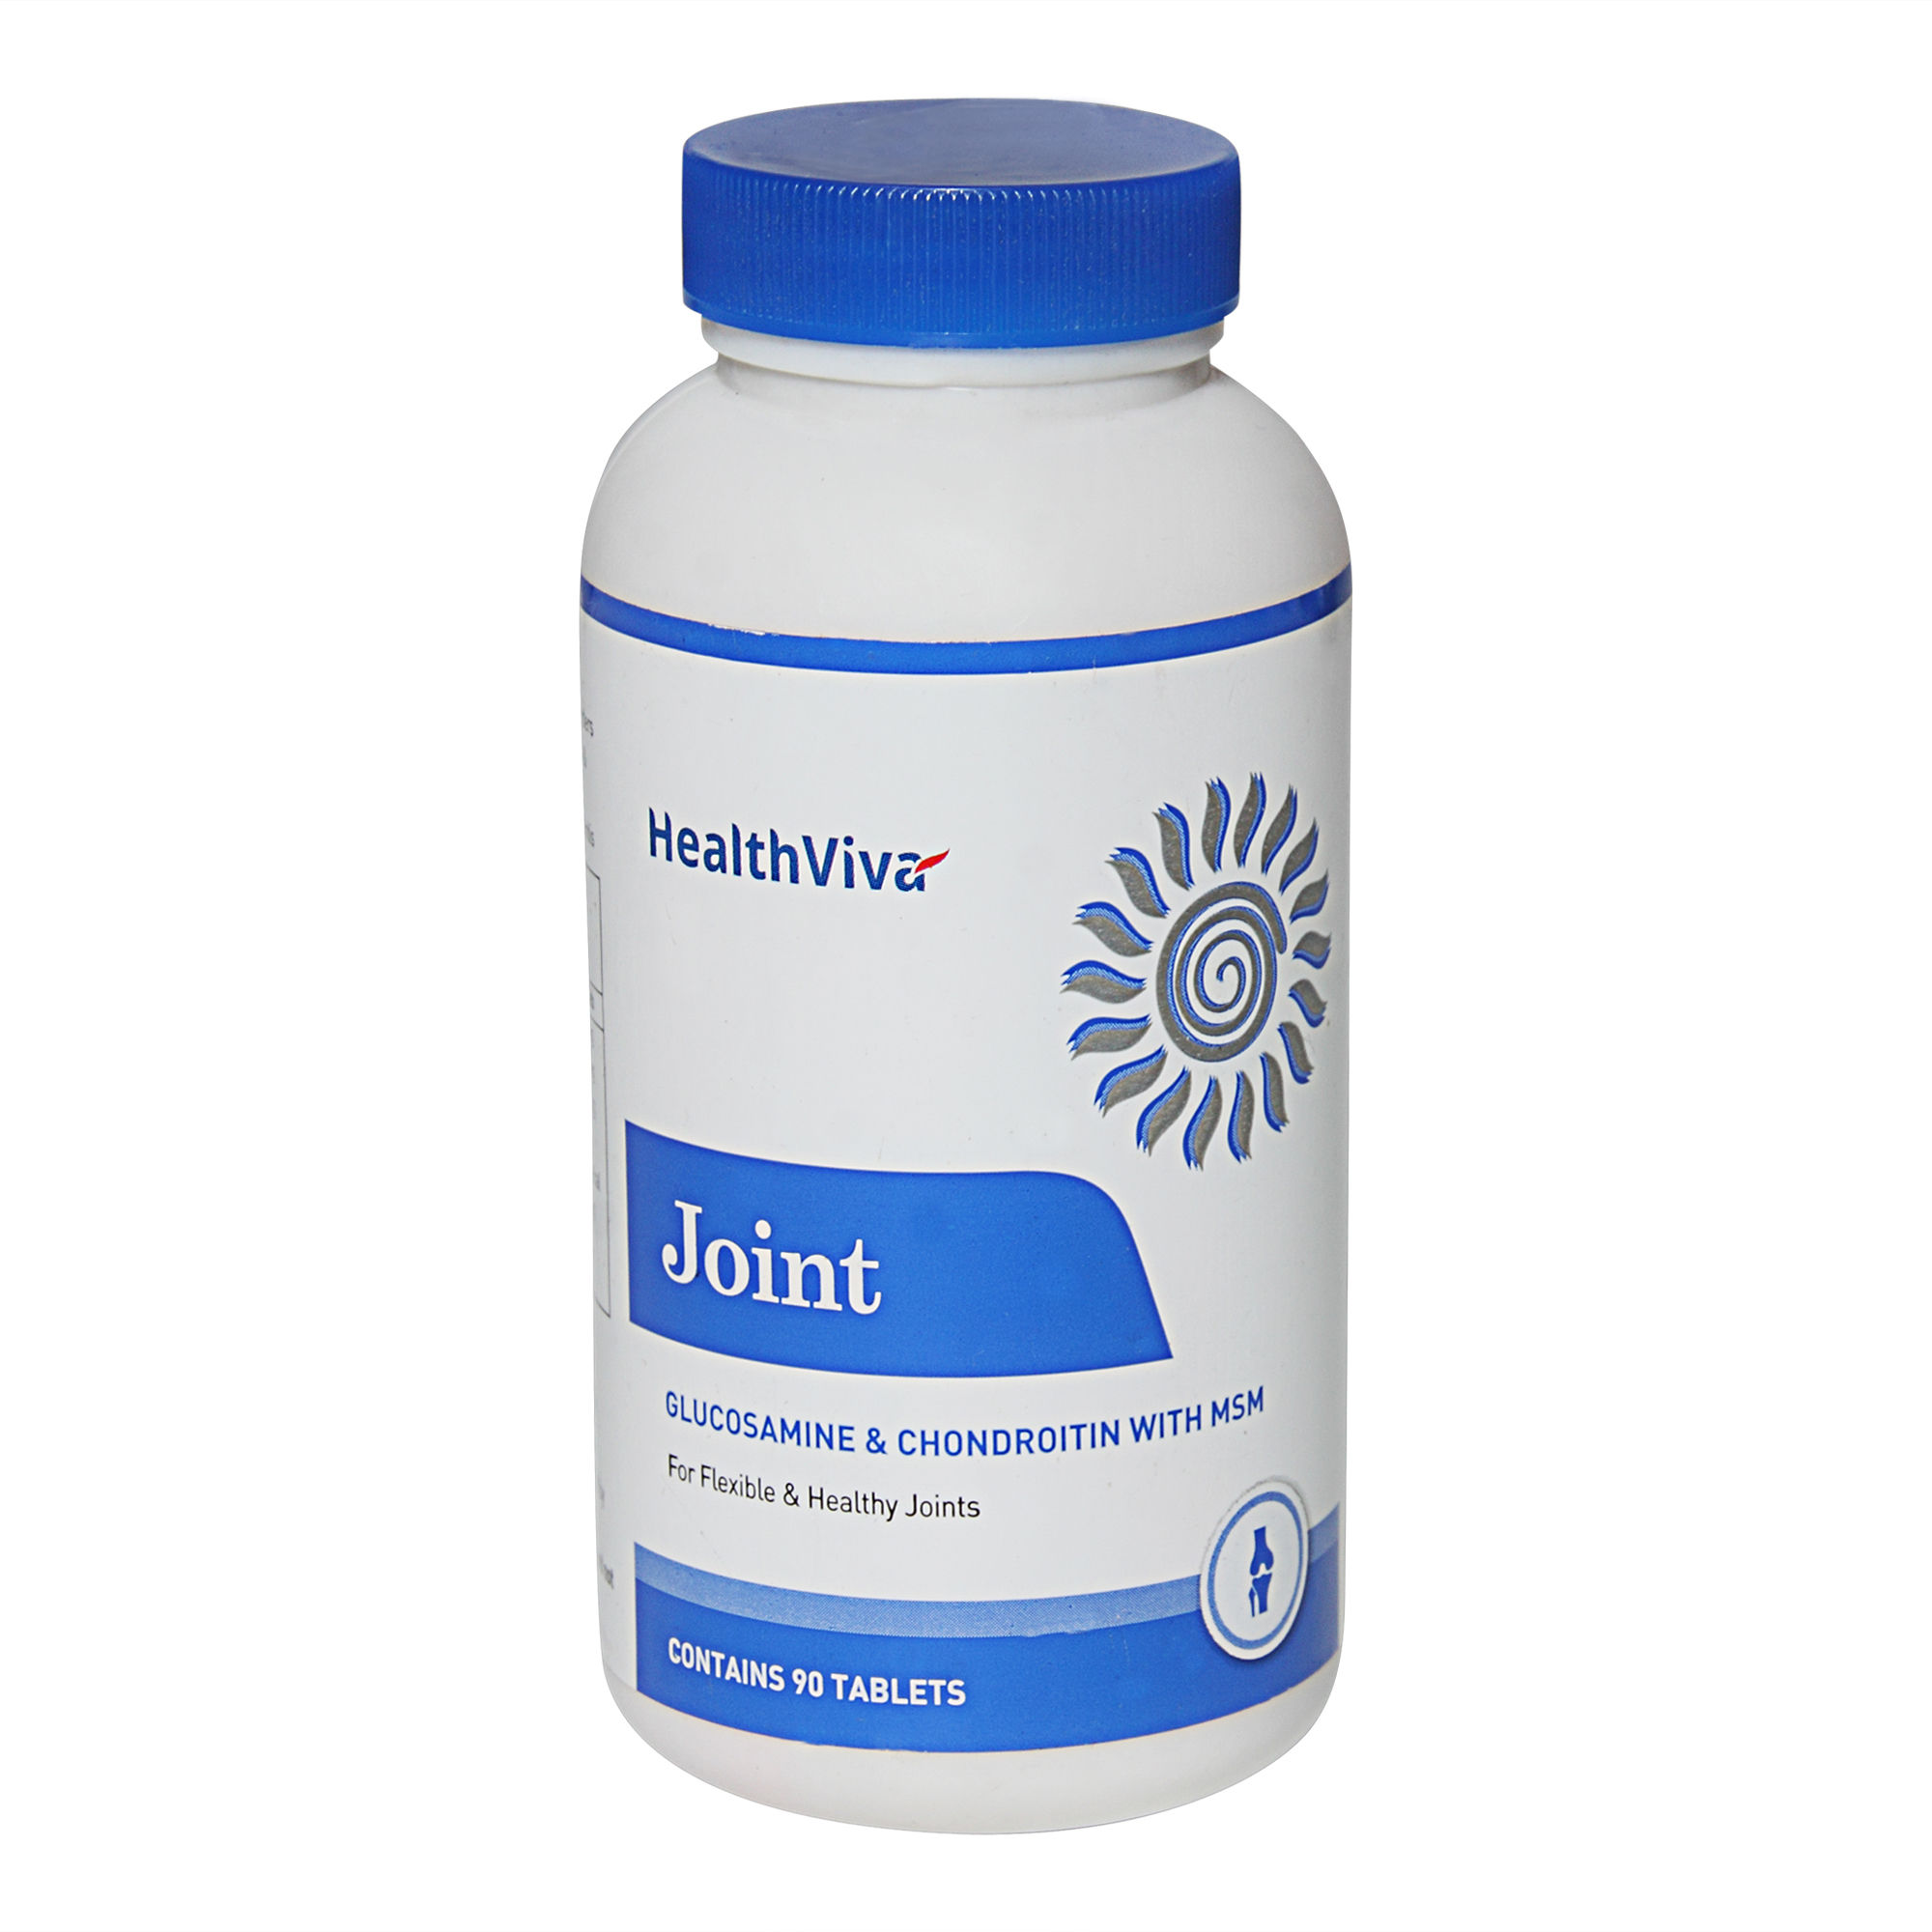 HealthViva Joint Glucosamine & Chondroitin with MSM